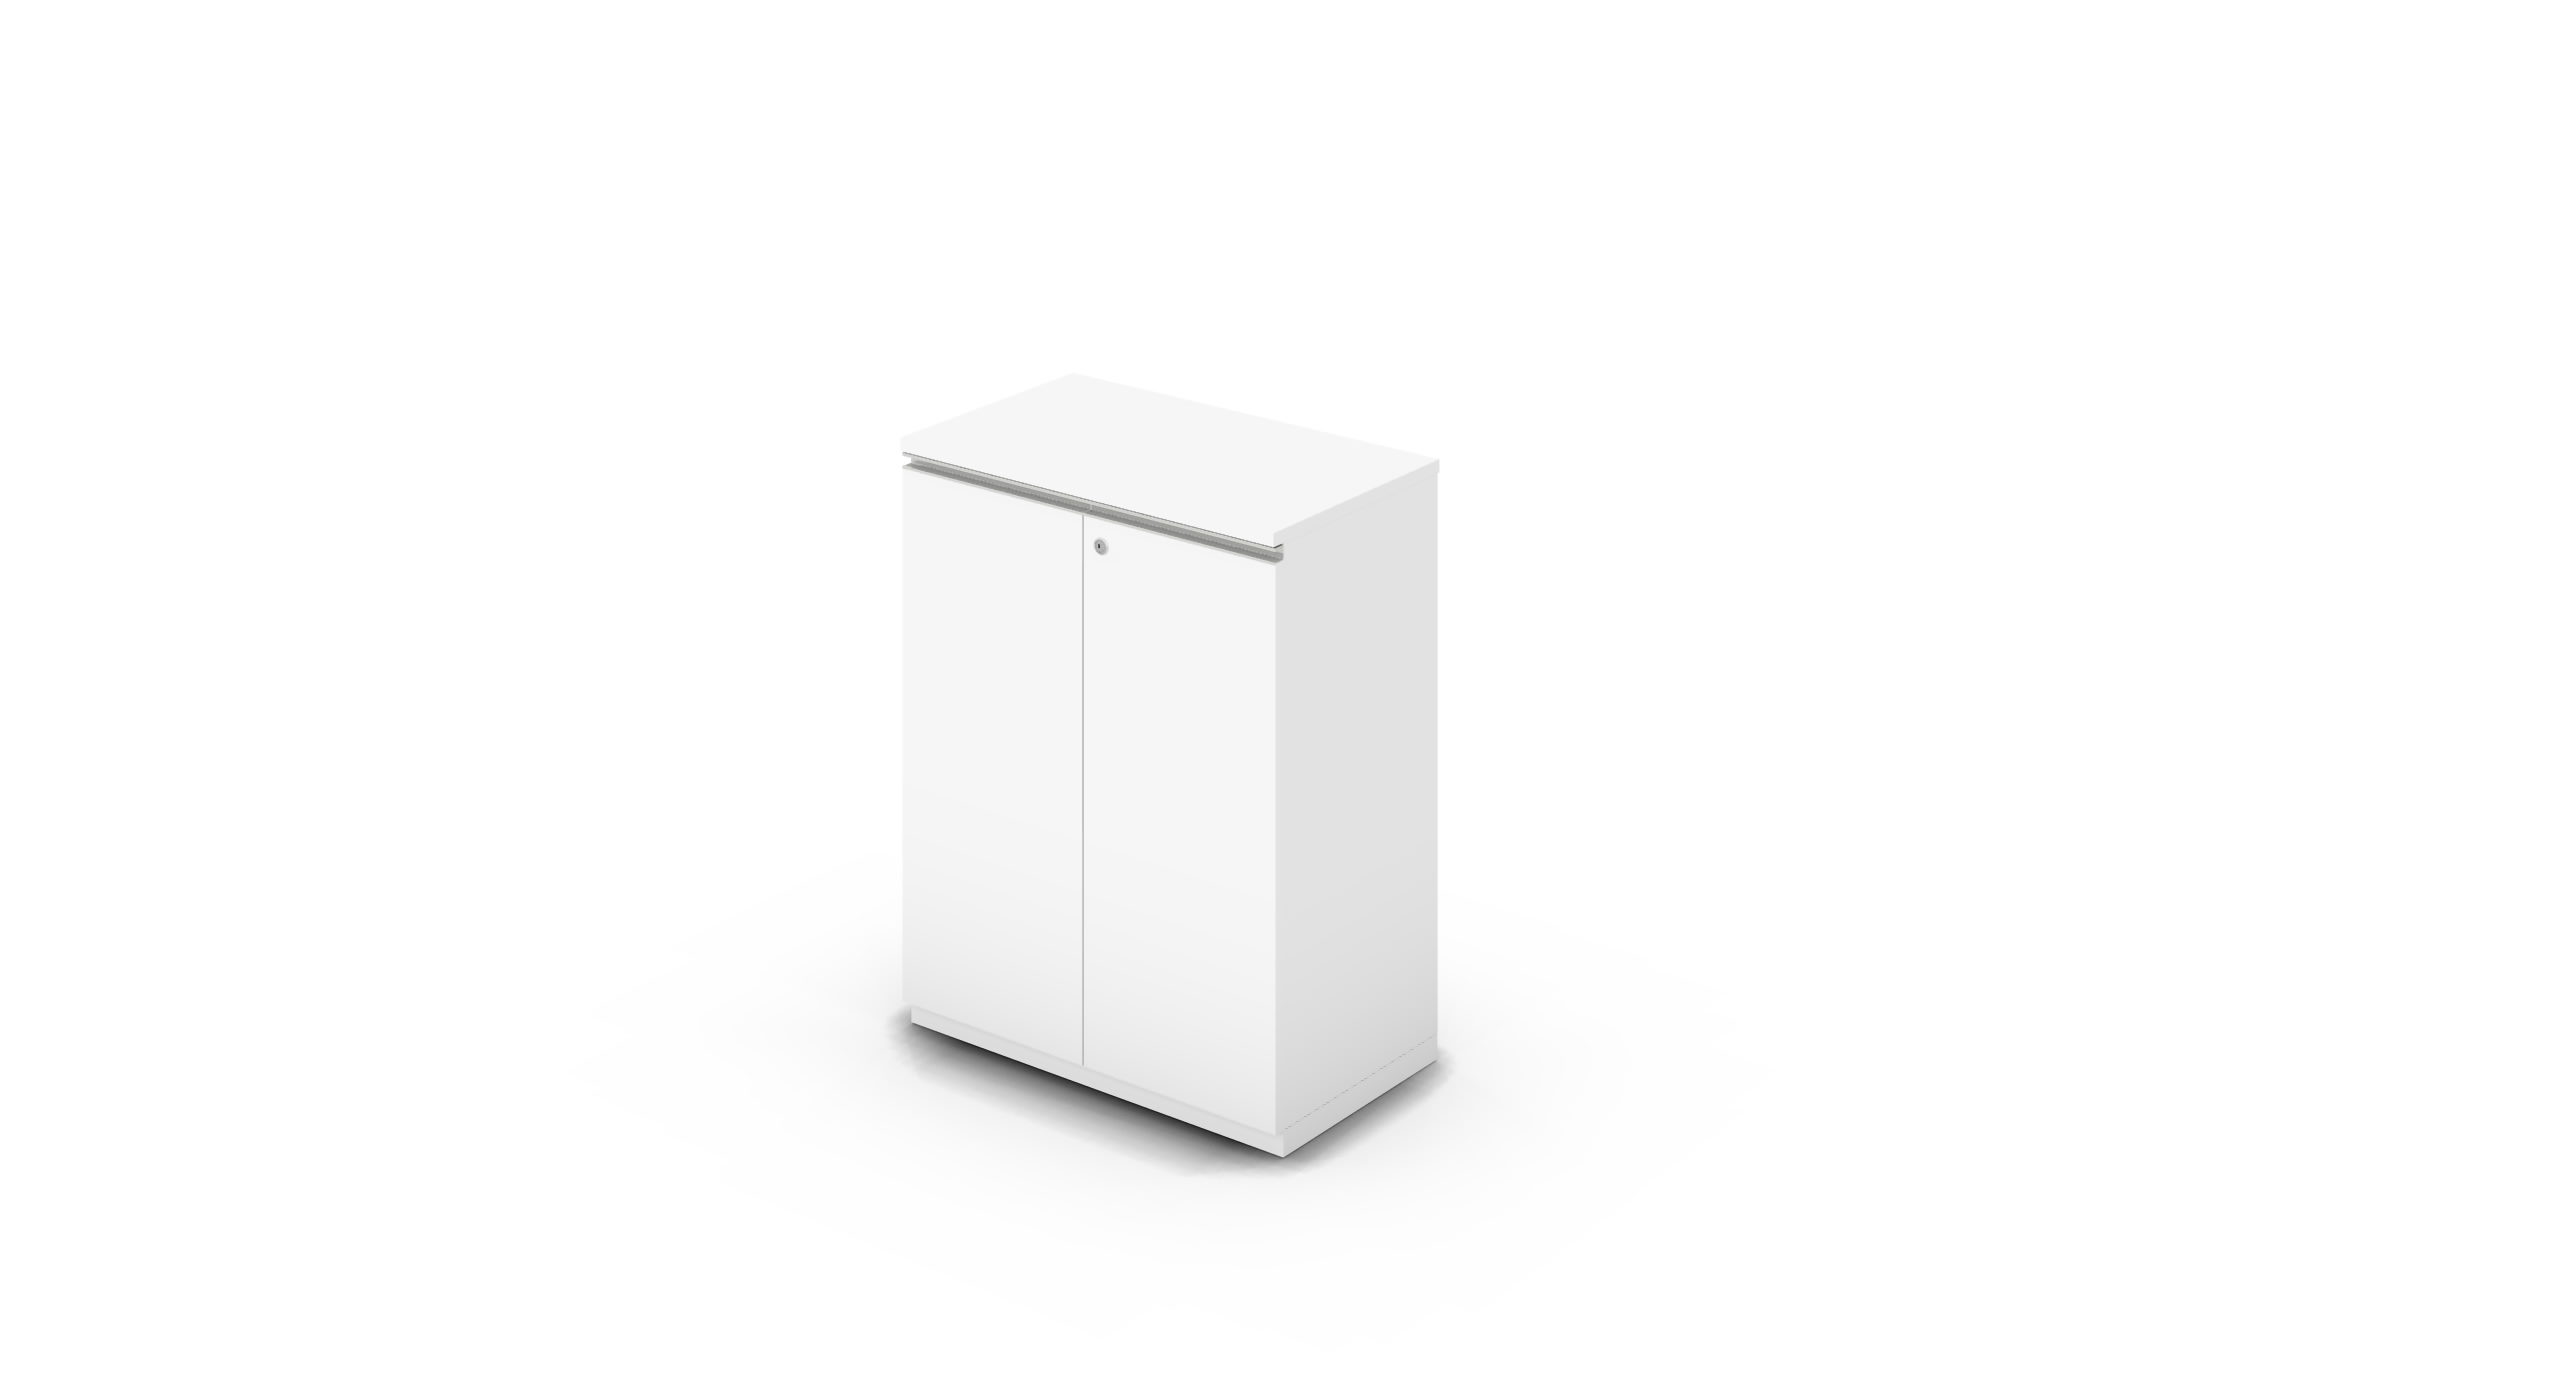 Cabinet_800x450x1125_HD_White_Rail_WithCylinder